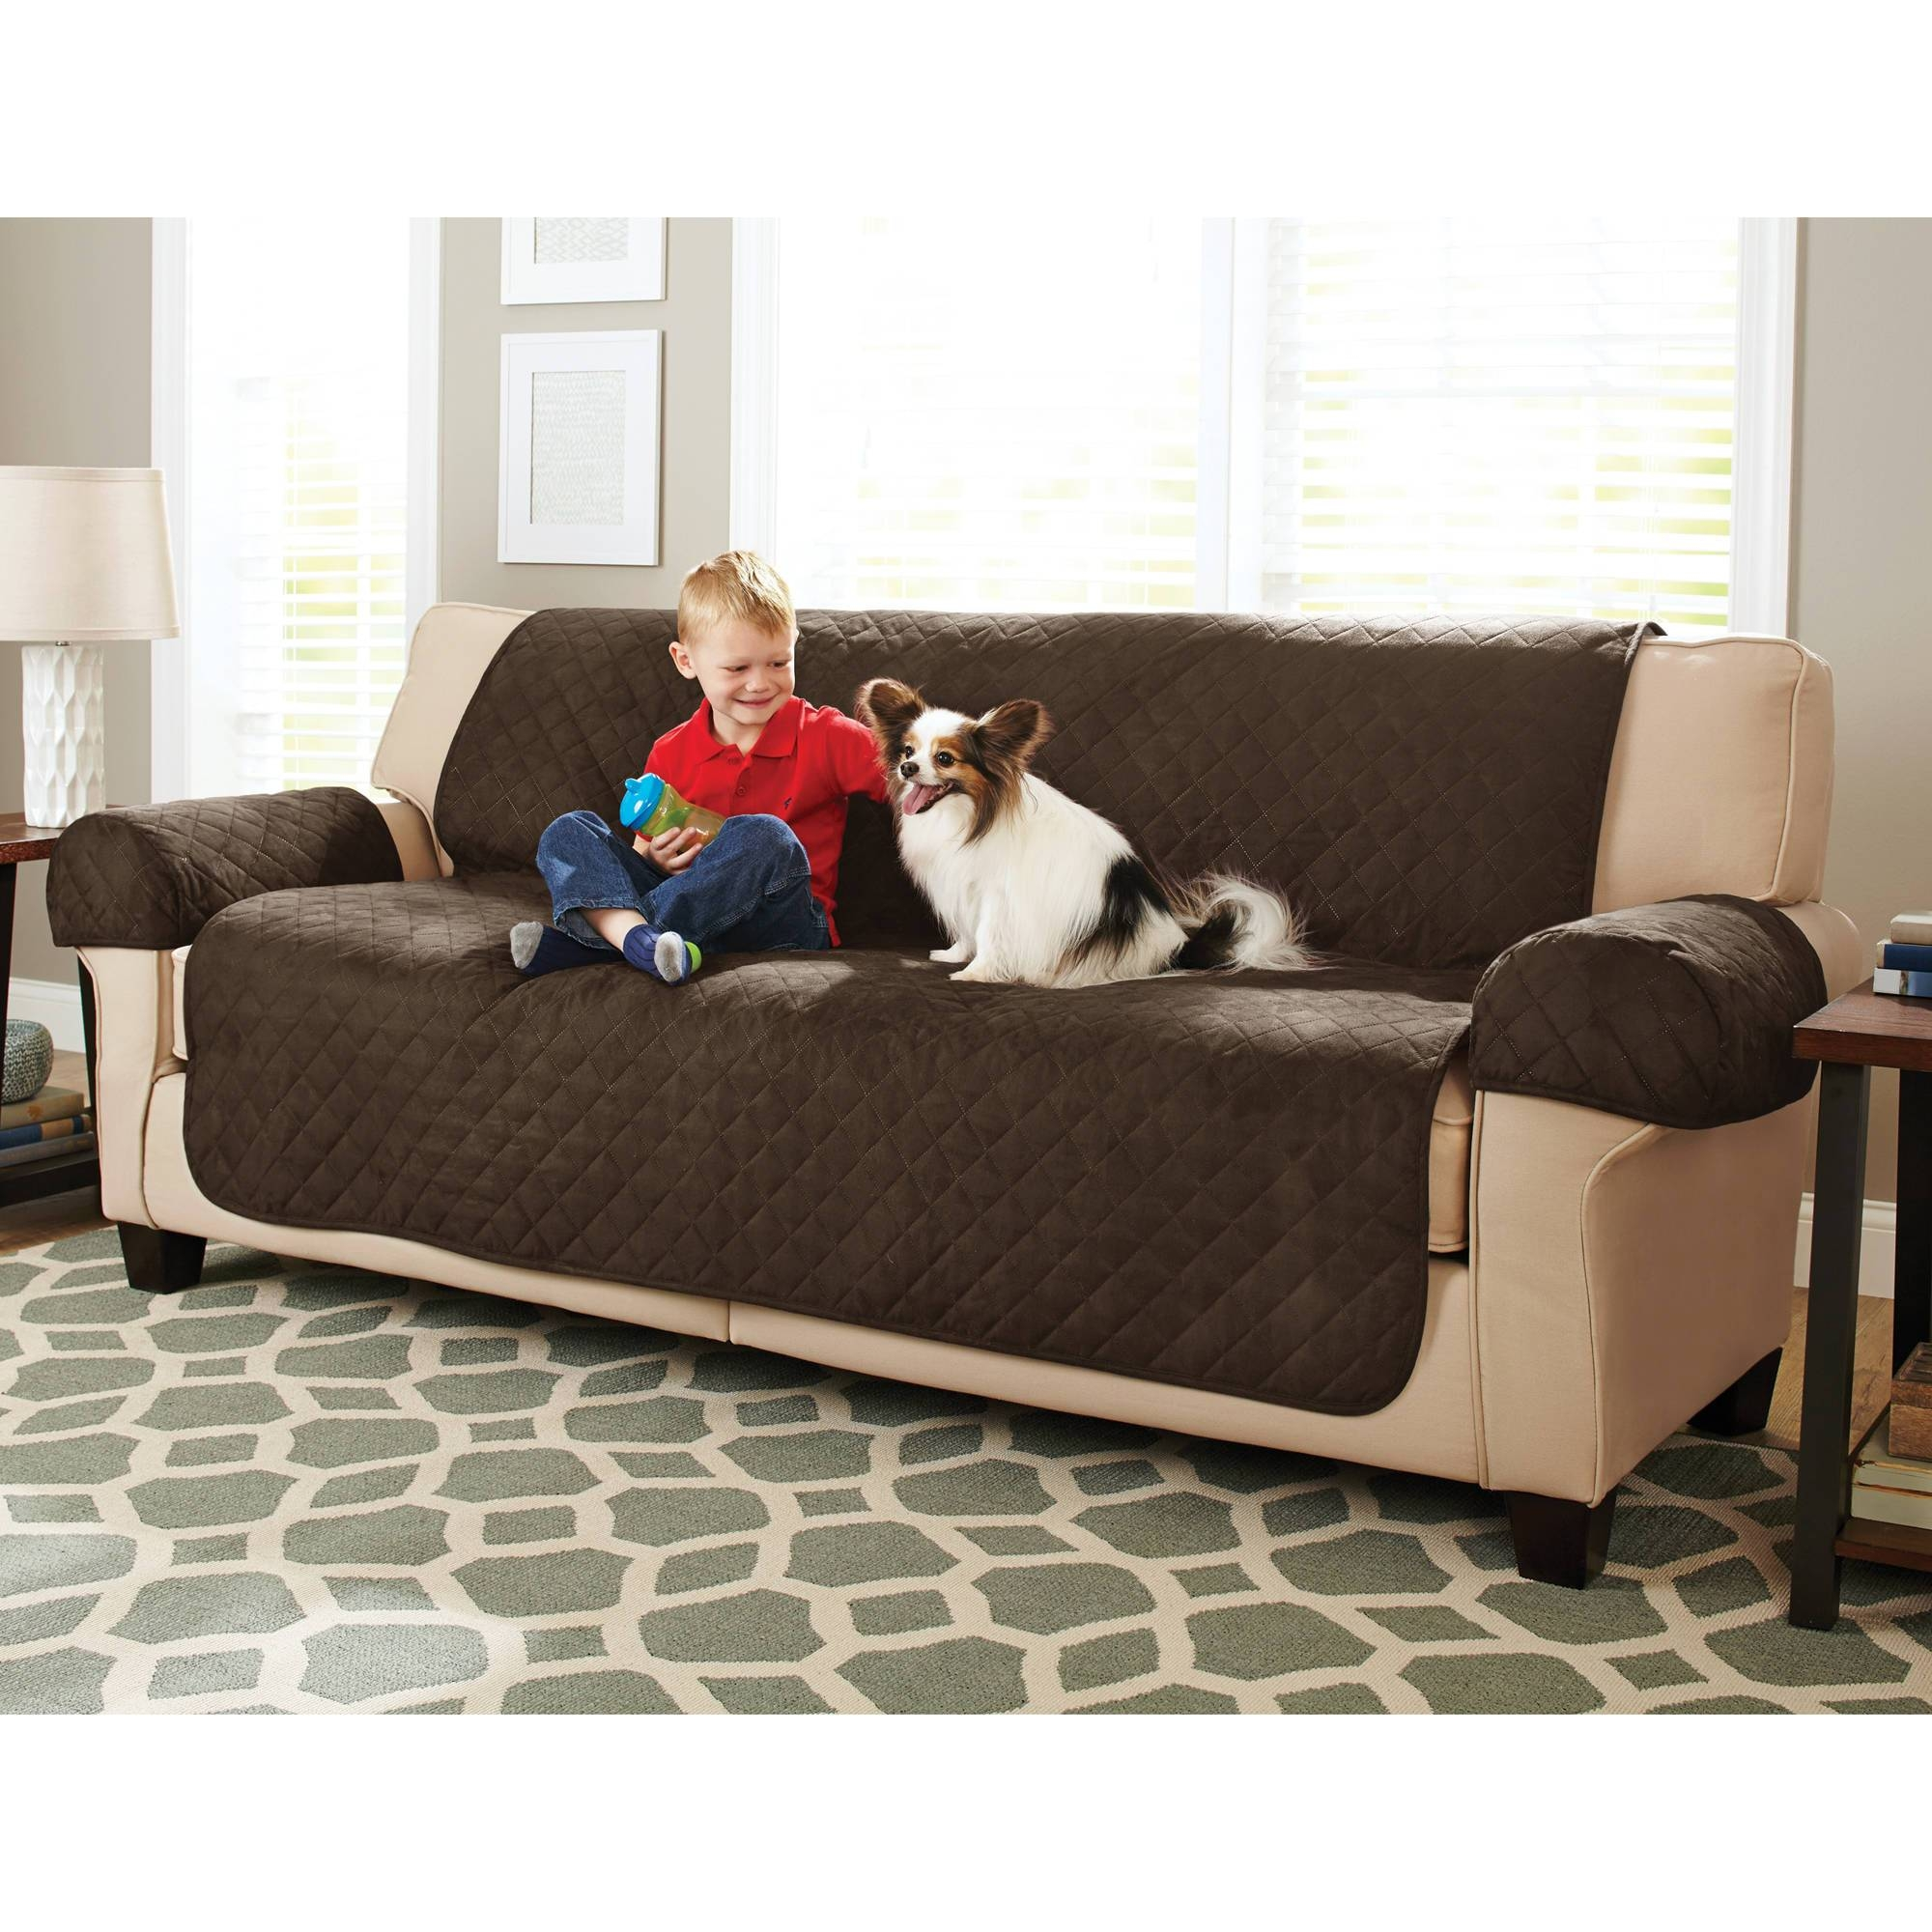 Furniture: Wonderful Walmart Couch Covers Design For Alluring with Contemporary Sofa Slipcovers (Image 19 of 30)